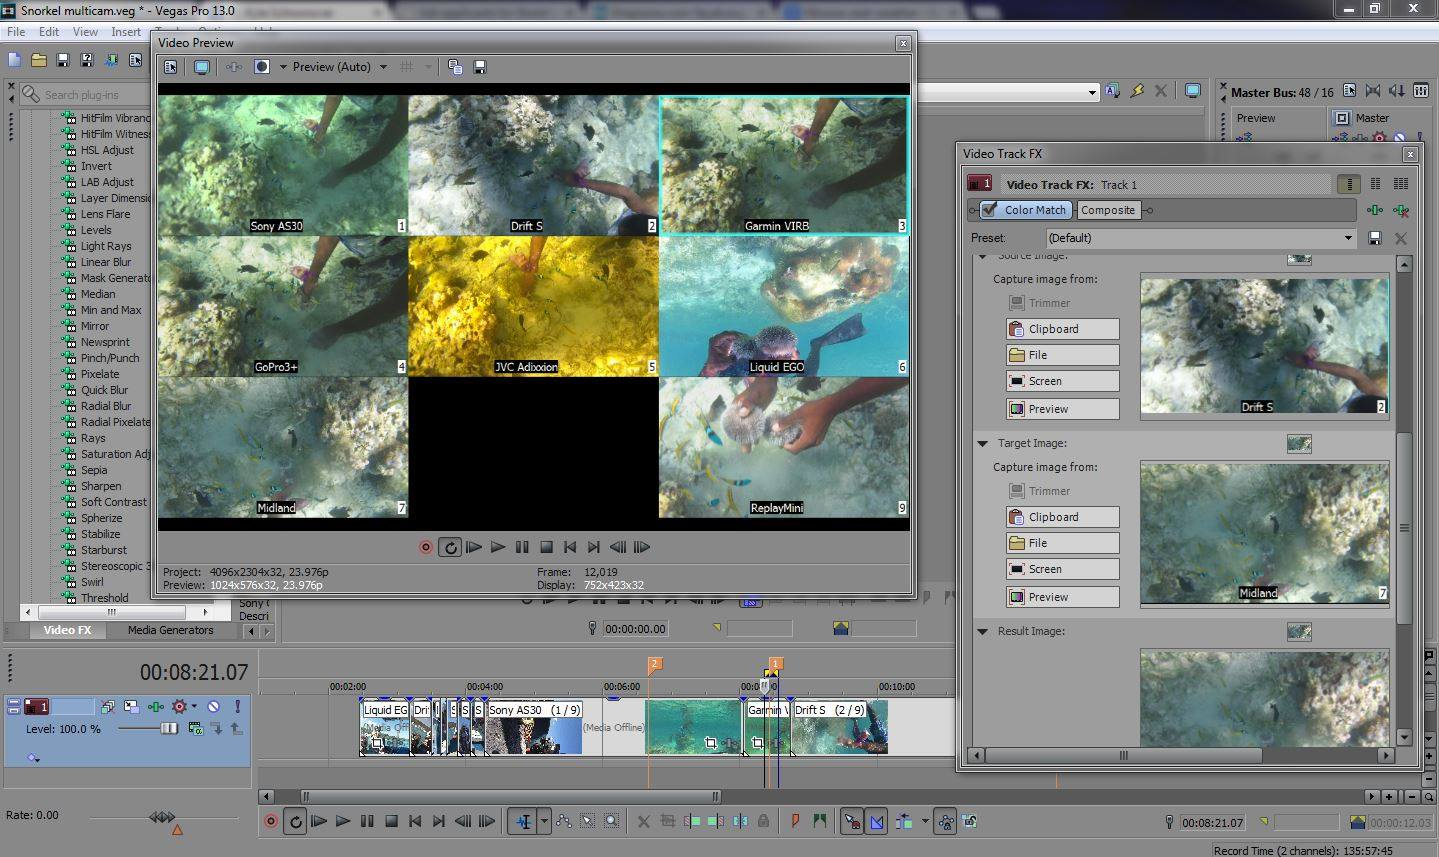 Sony vegas pro 13 download link + crack pl youtube.